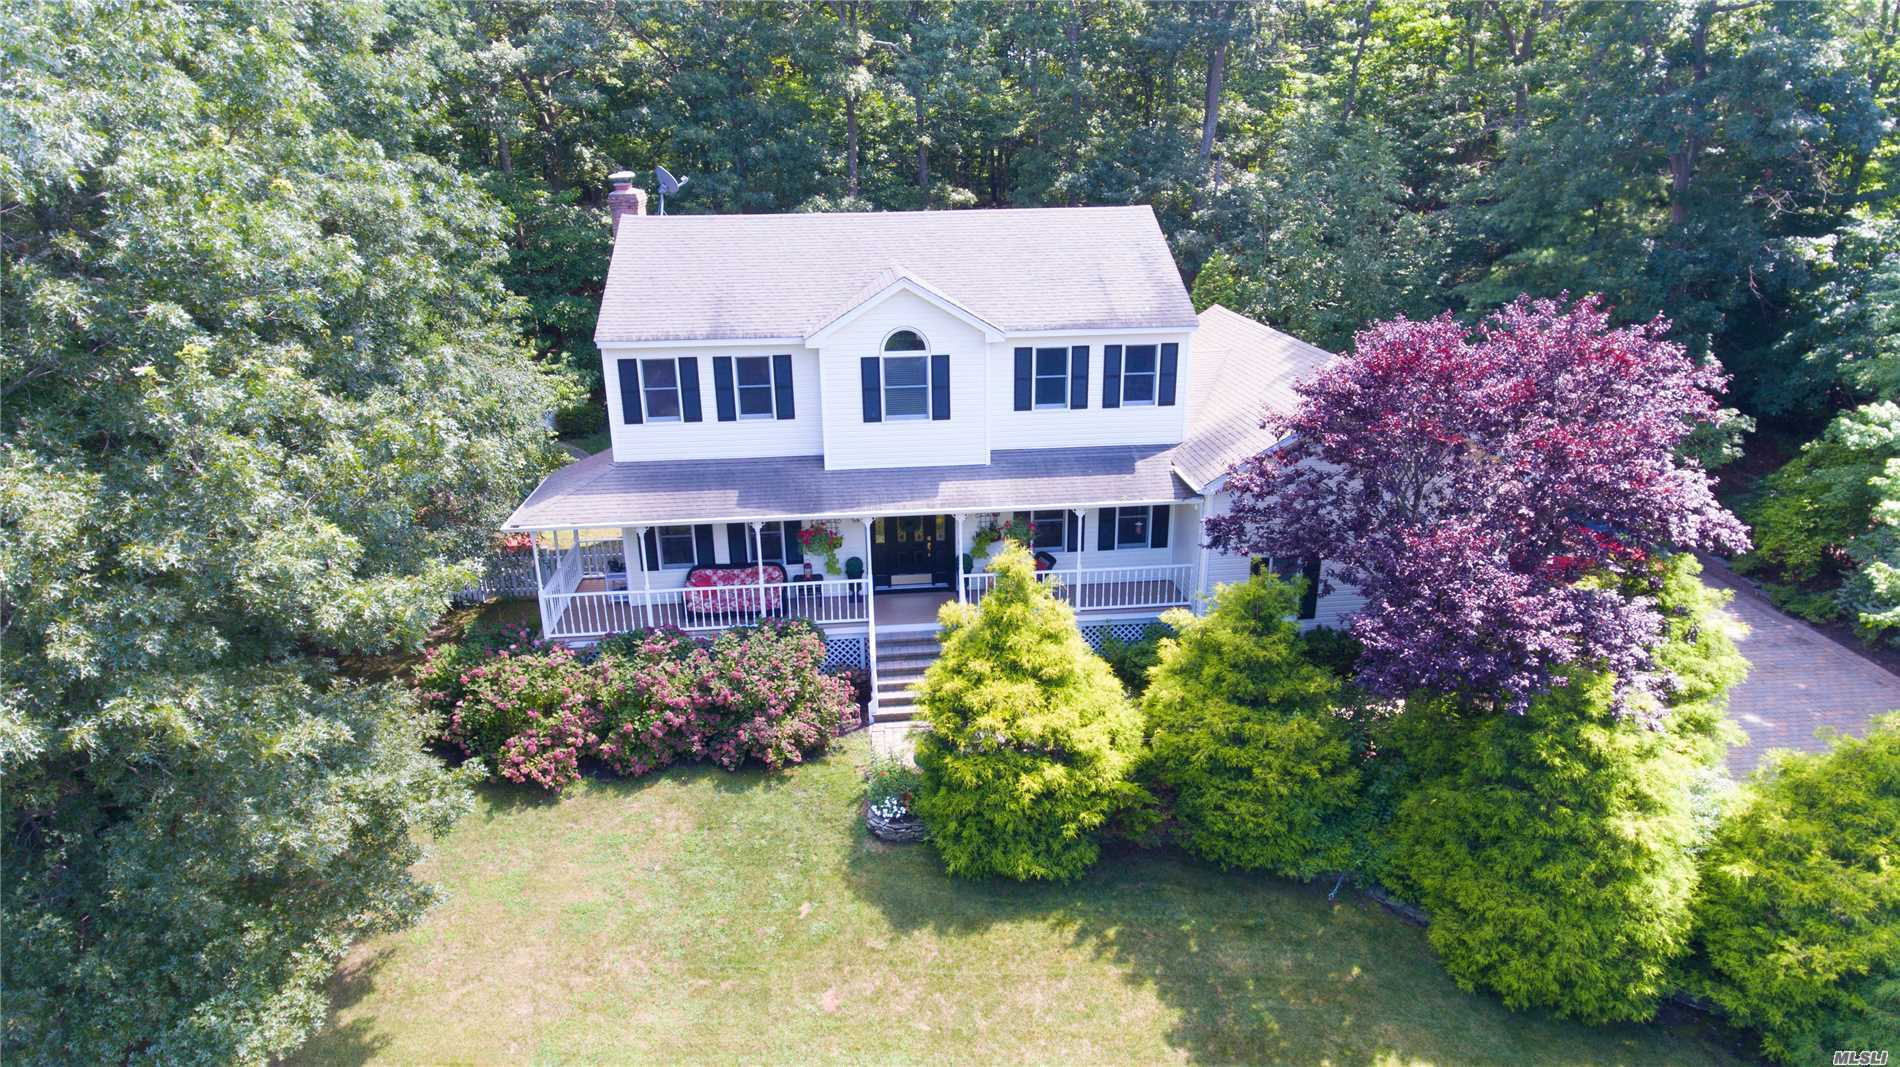 Spacious Colonial In The Desirable Great Rock Development. 4Brs & 4Bth, 9' Ceilings On 1st Floor. Kitchen Updated W/Granite Counters & Stainless Appliances. Den With Fireplace, Oak Floors, Central A/C, 1st Fl. Office Or 5th Br. Approx. 2300 Sq. Ft. 2 Car Garage & Easy To Finished Basement. Private Landscaped Yard. Close To Beach, Farms, Vineyards, Restaurants, Shopping And All North Fork Attractions.